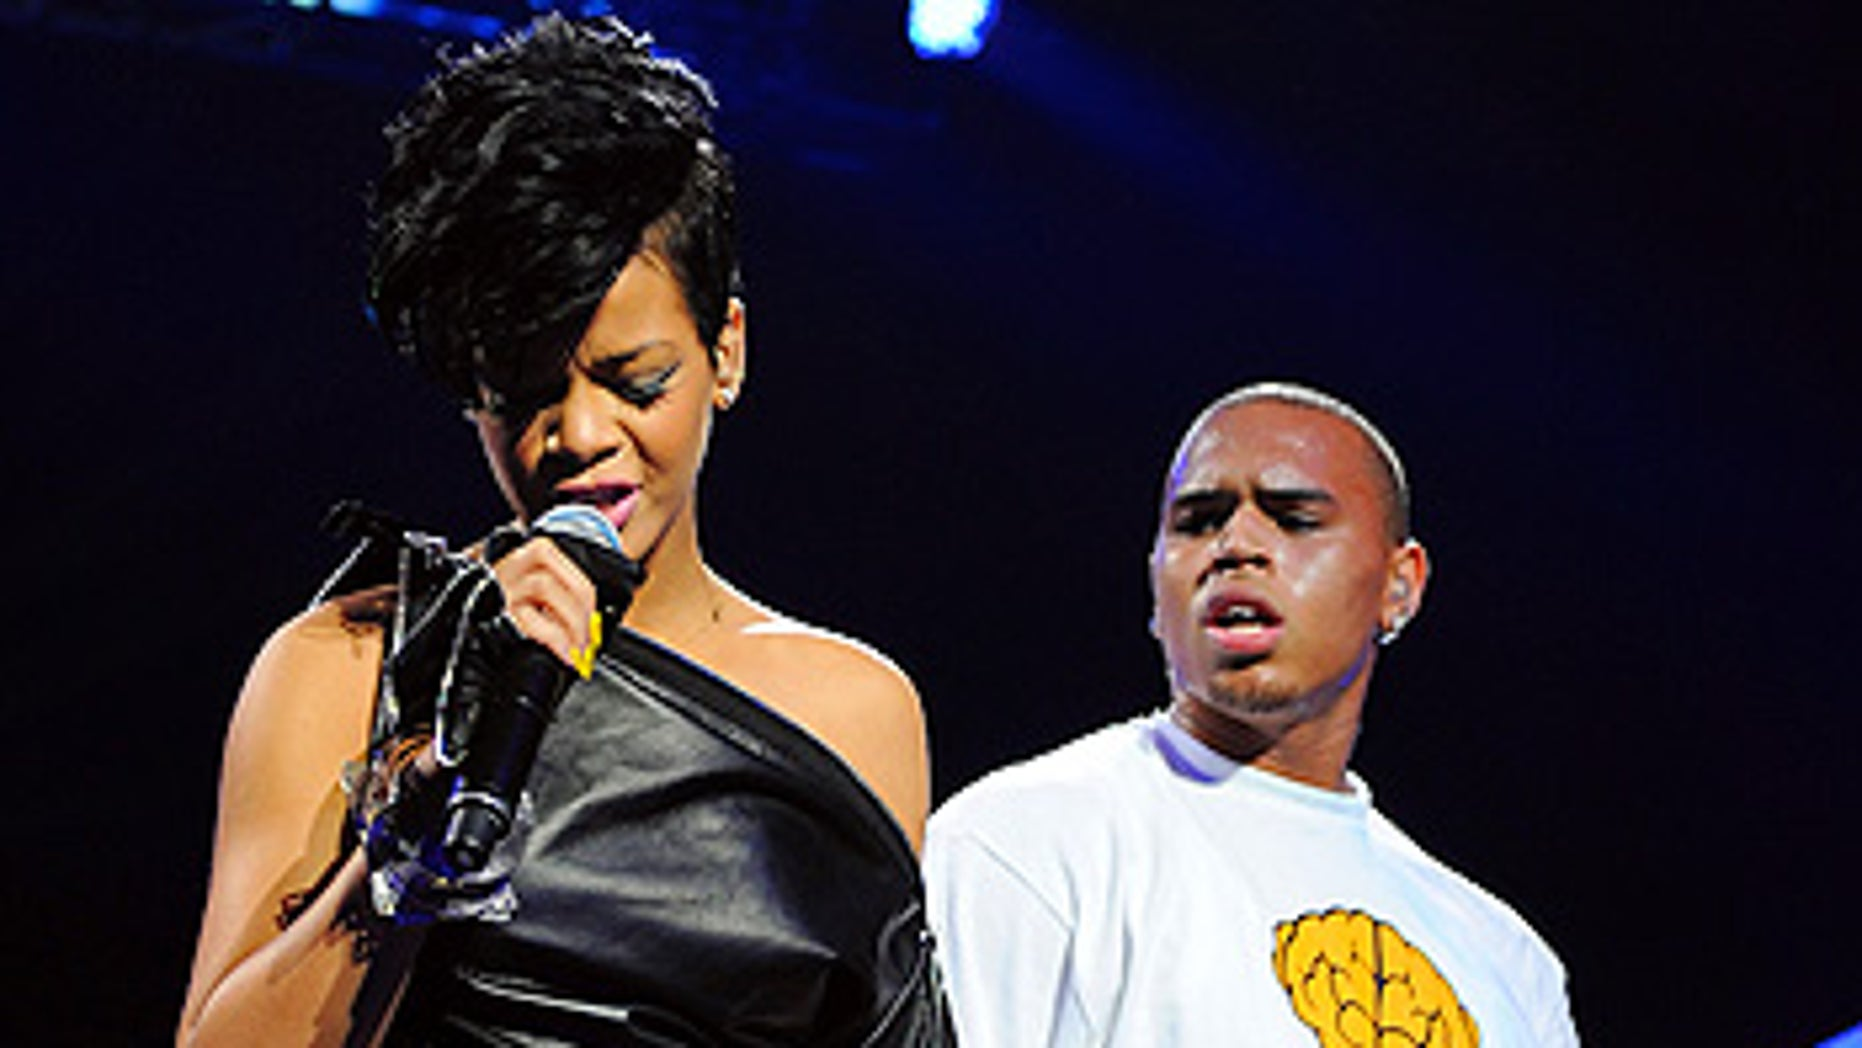 Rihanna and Chris Brown perform at Madison Square Garden in New York on Dec. 12, 2008.